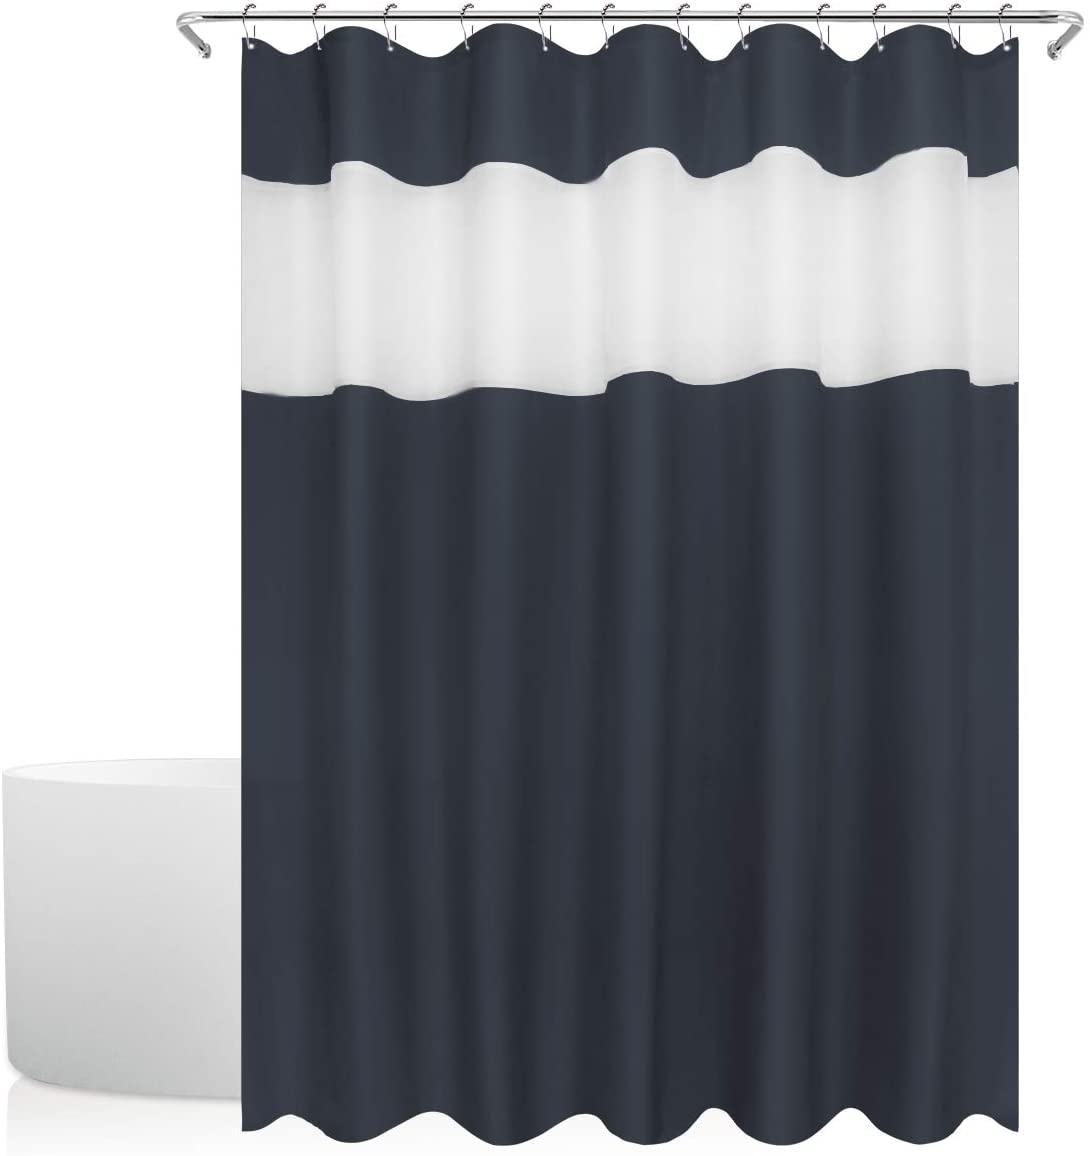 Eforgift Pastoral Top Tulle Design Shower Curtain Water Repellent Fabric, Solid Black Stall Curtain Machine Washable (Navy Blue, 72Wx84L)